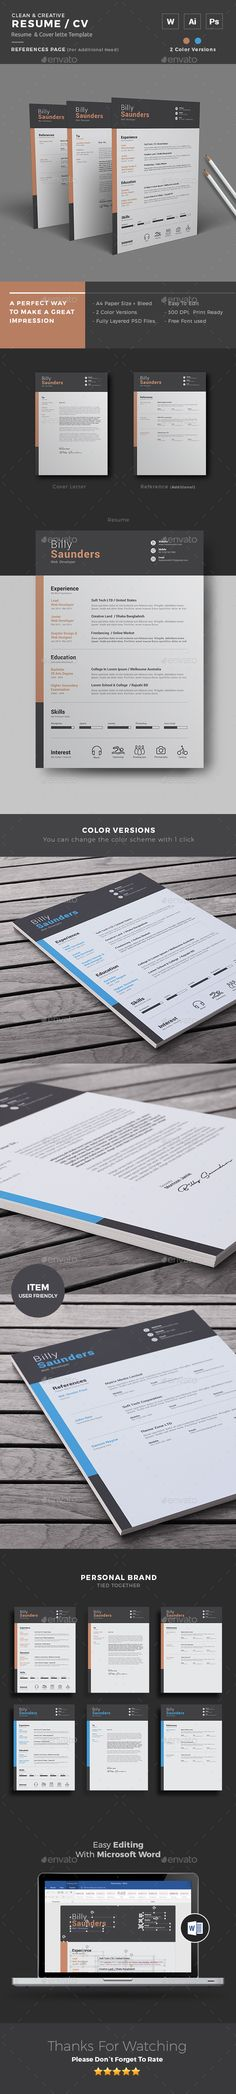 Resume Booklet Design _8 Pages Booklet design, Indesign - http resume download